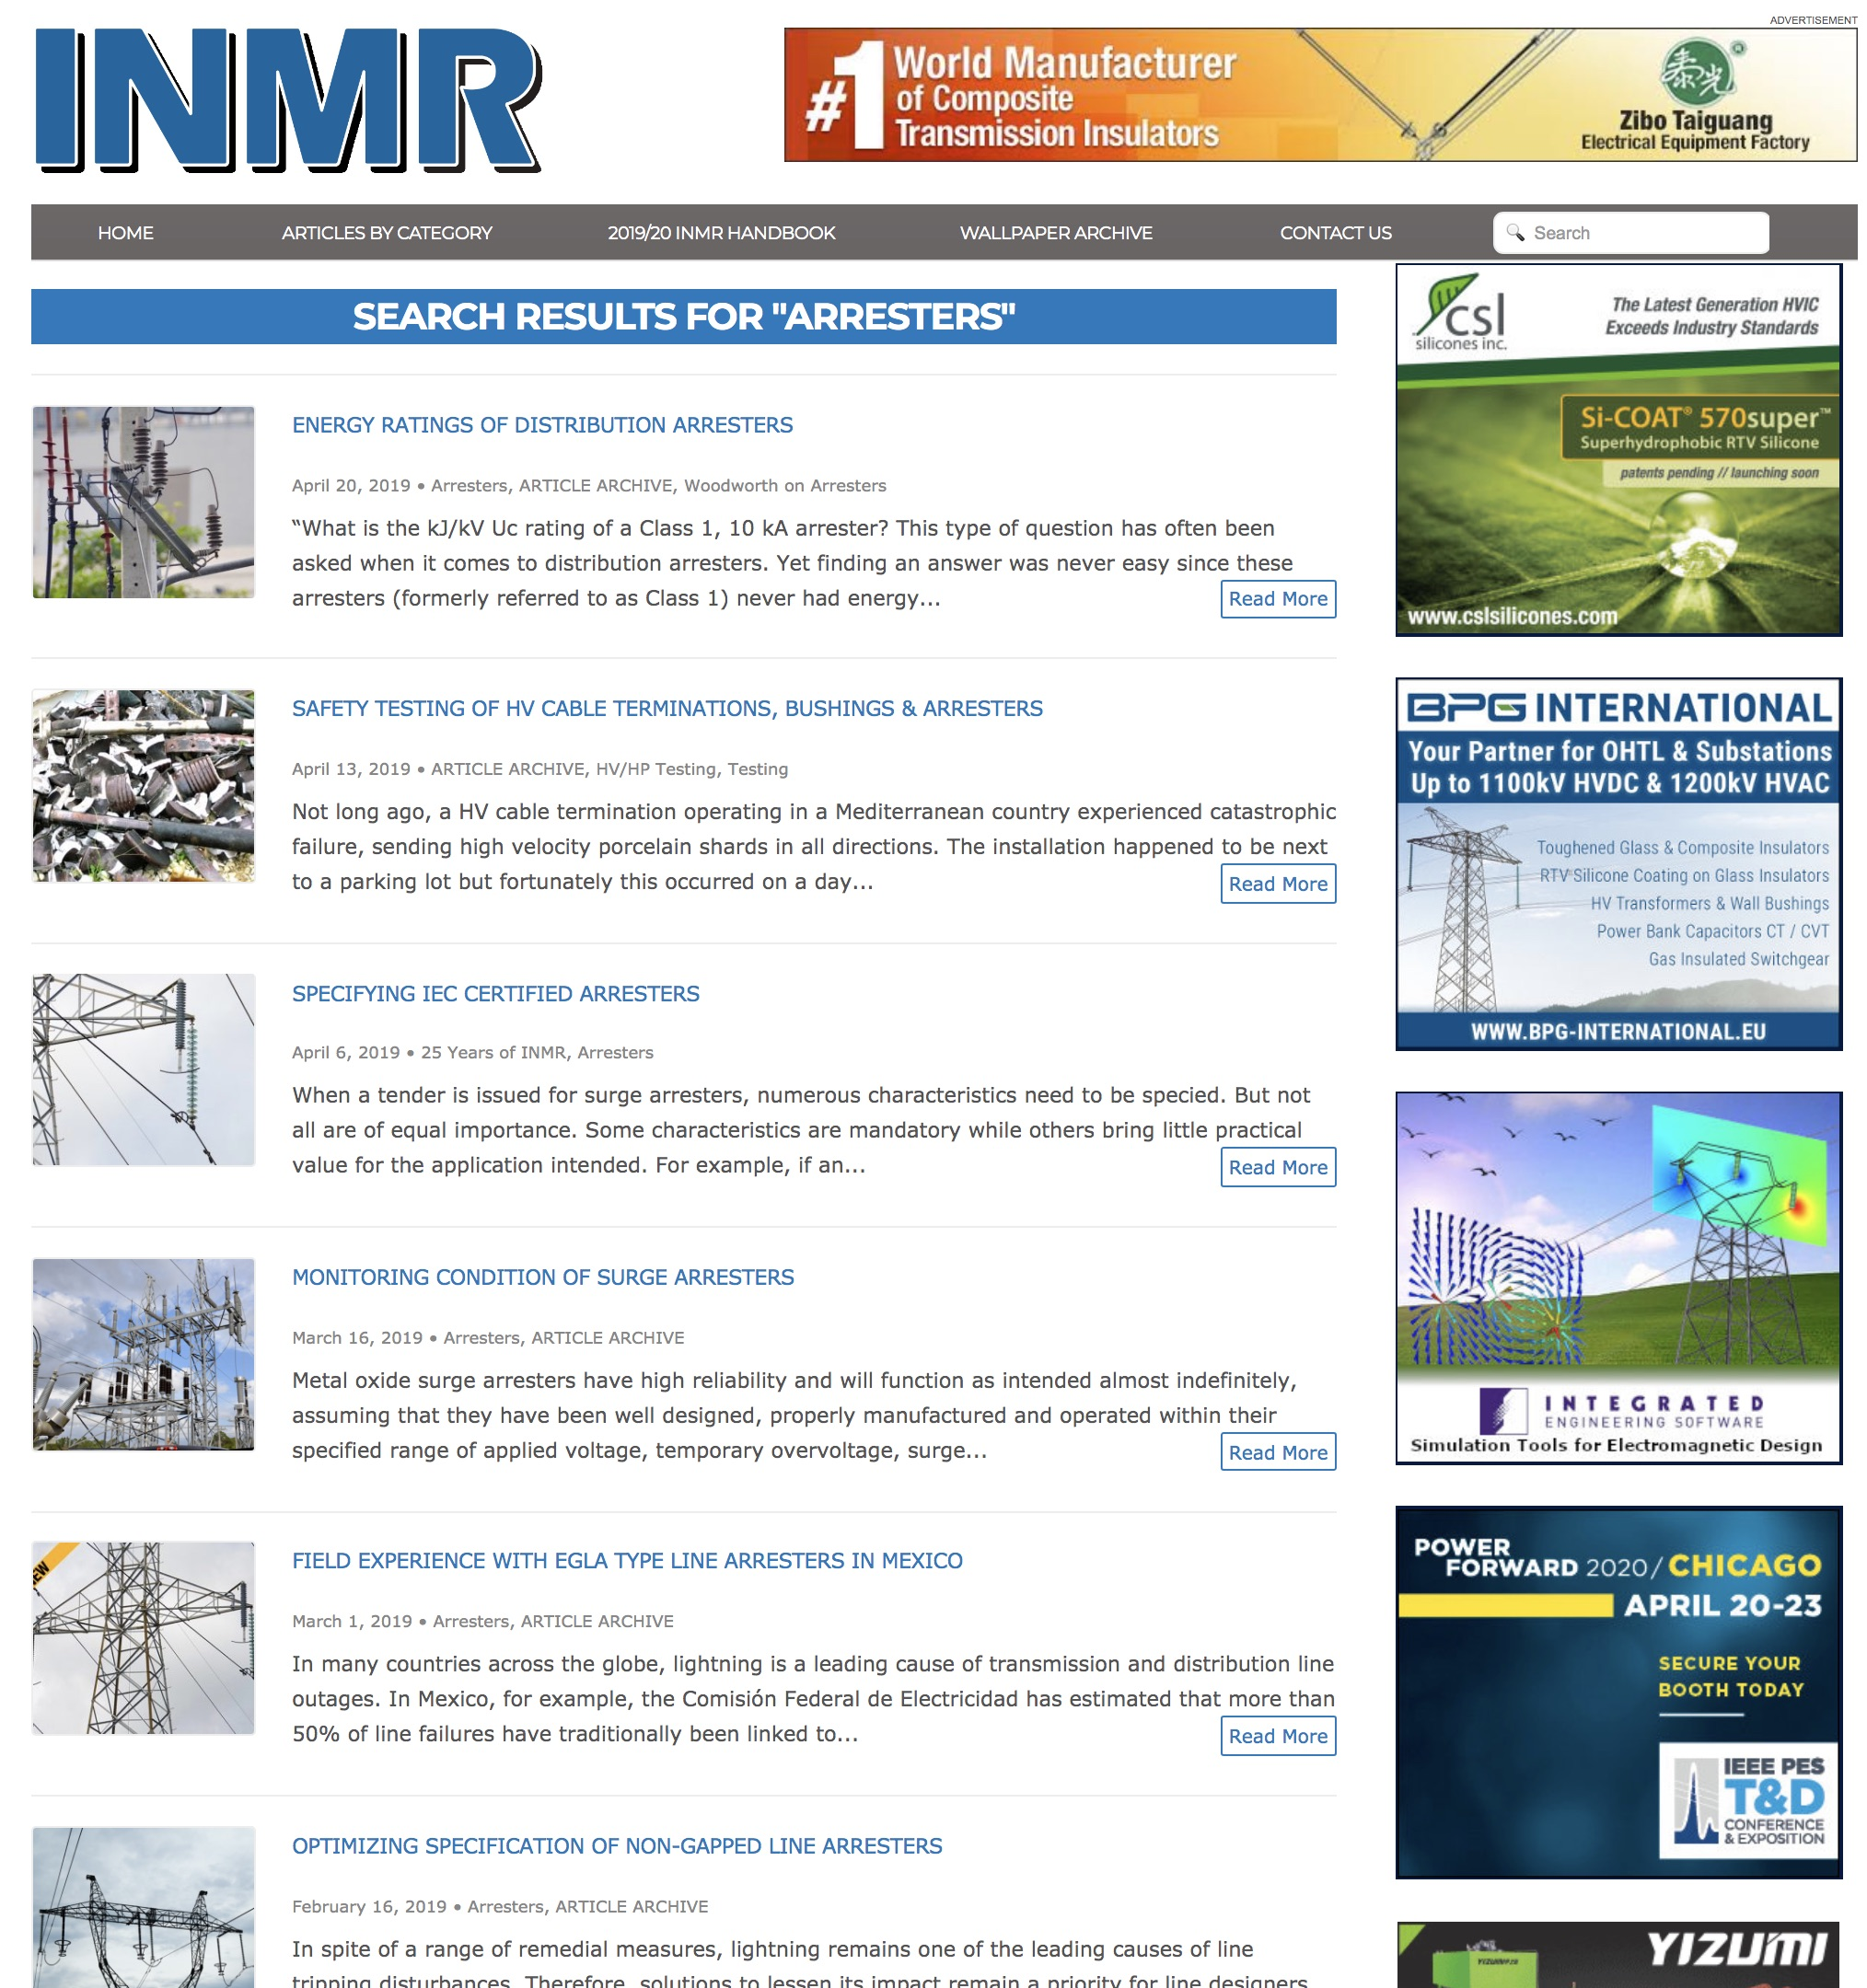 Technical Articles Access Technical Articles by Experts on Surge Arresters inmr